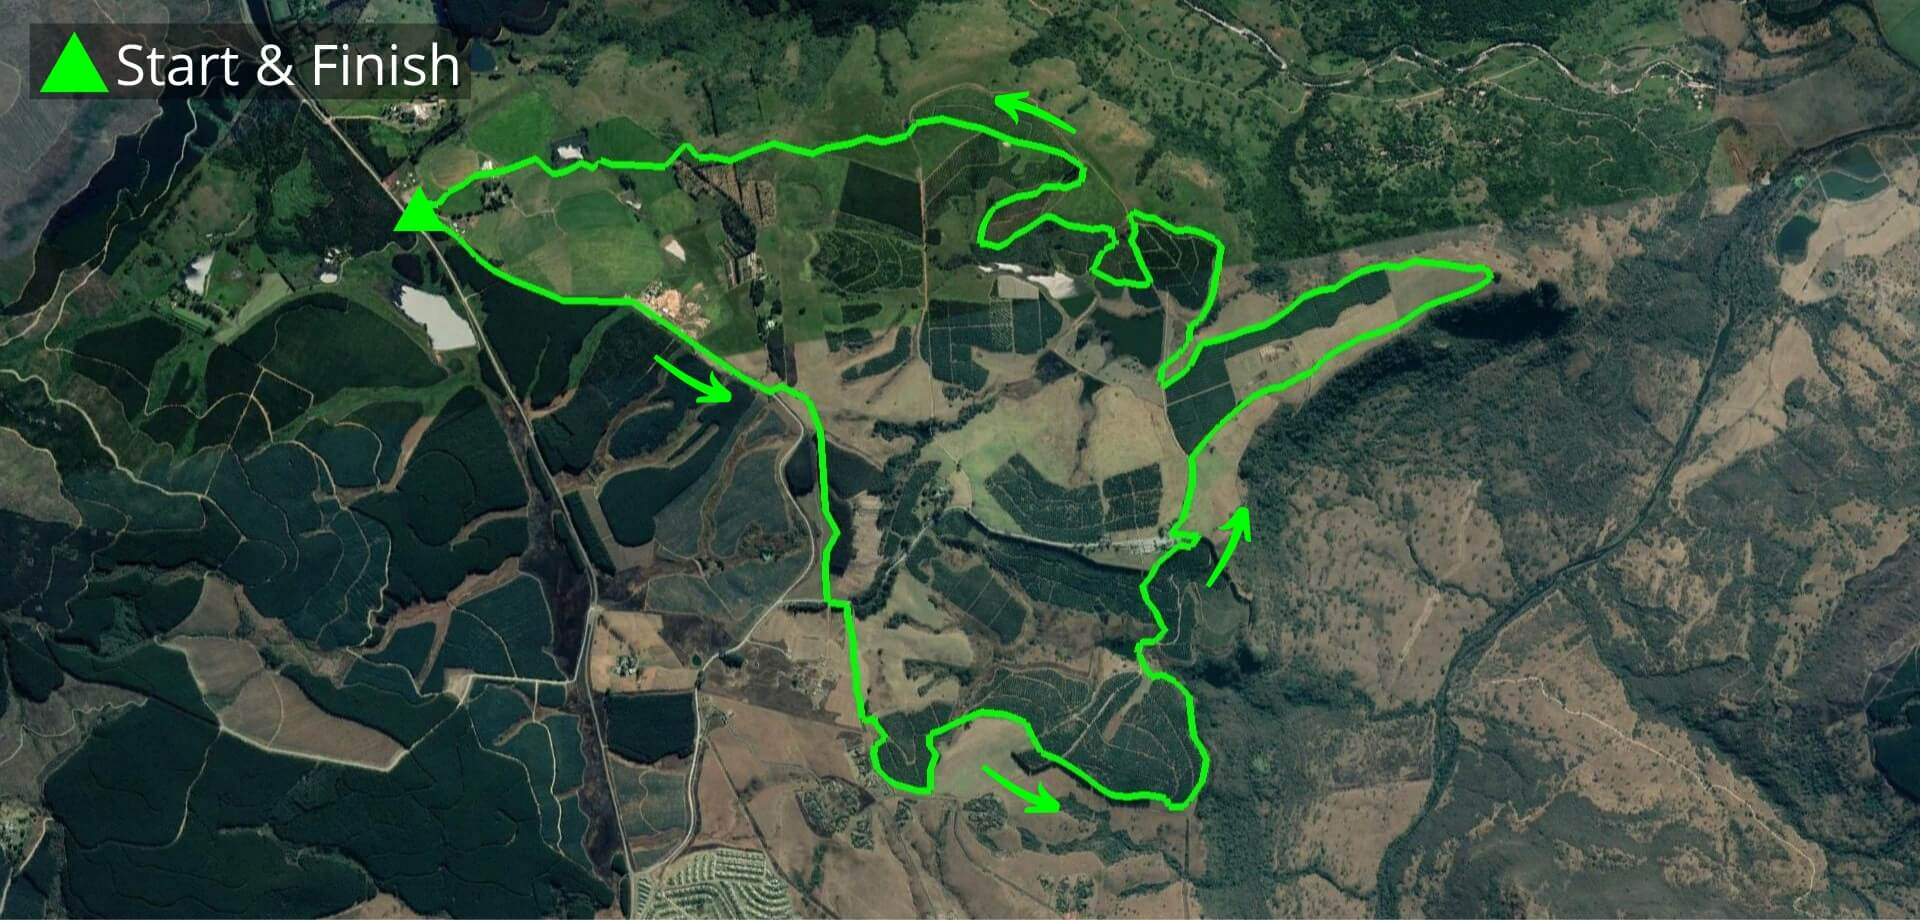 KZNTR Howick Trail Run Mar20 - 20km Course Route (Directioned)